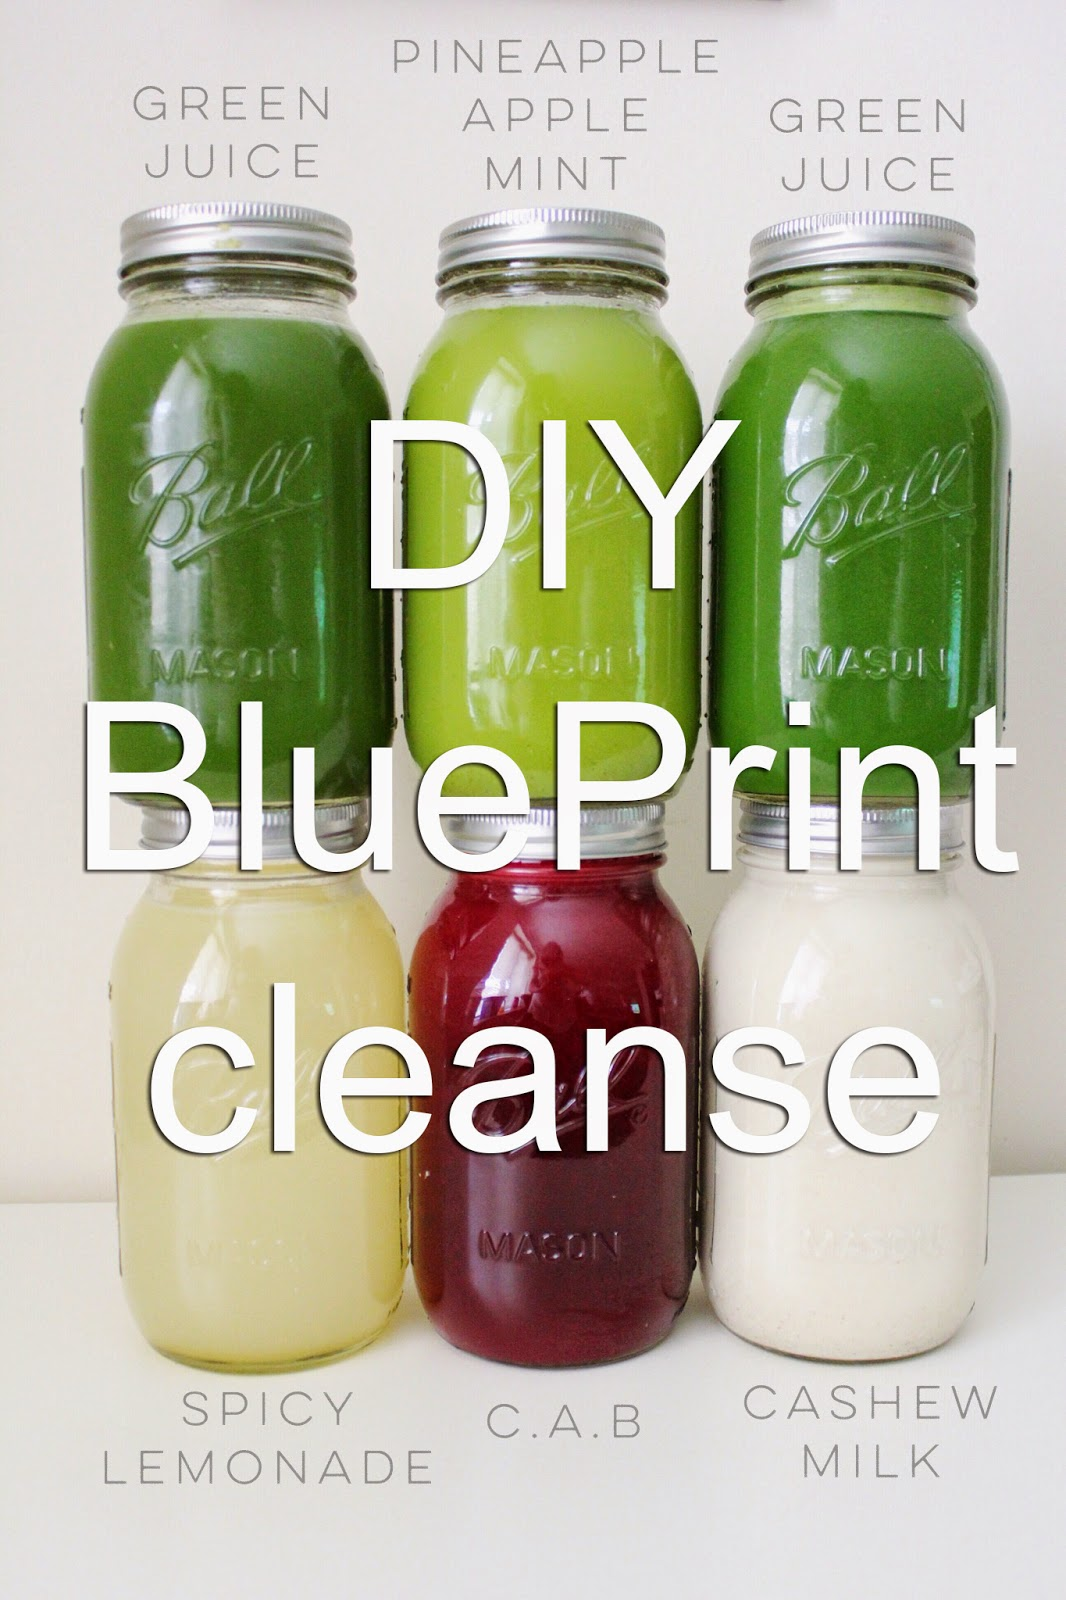 Updated diy blueprint cleanse sandras studio a while back i created a diy blueprint cleanse a juicing detox that you can do at home without spending so much money on these juices 195 for this 3 day malvernweather Image collections